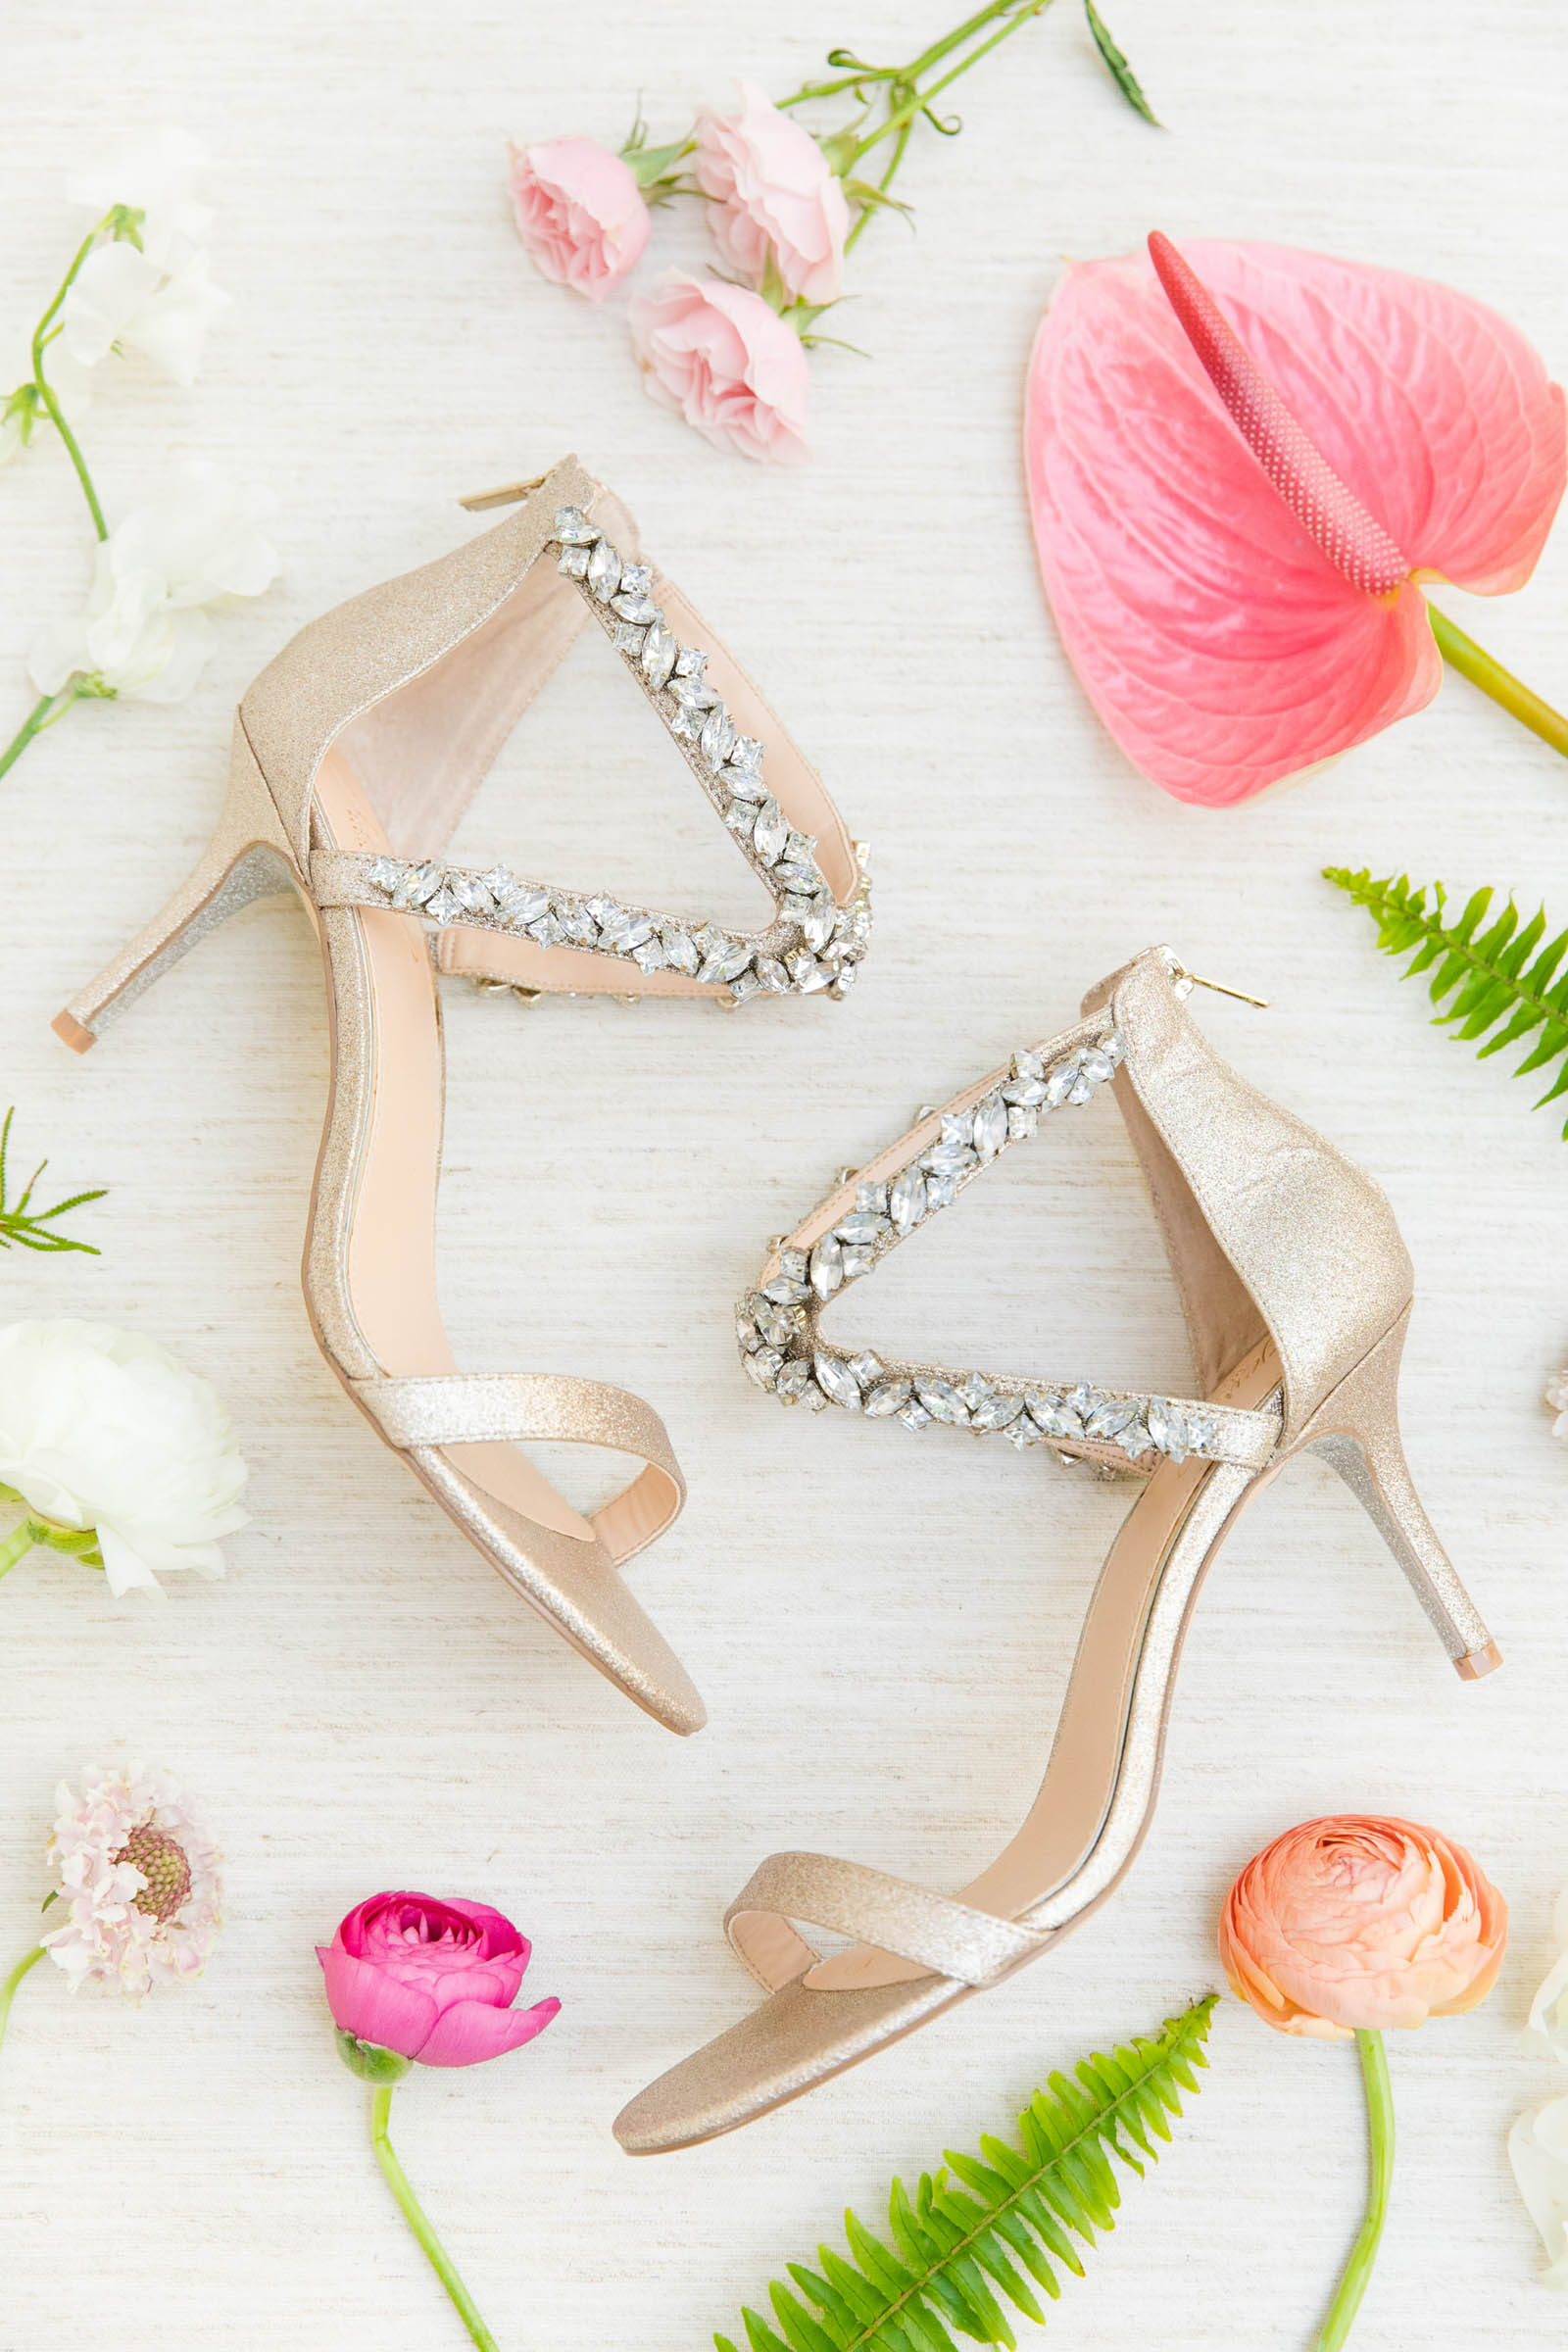 Flat lay with jeweled bridal shoes - photo by Dana Cubbage Weddings